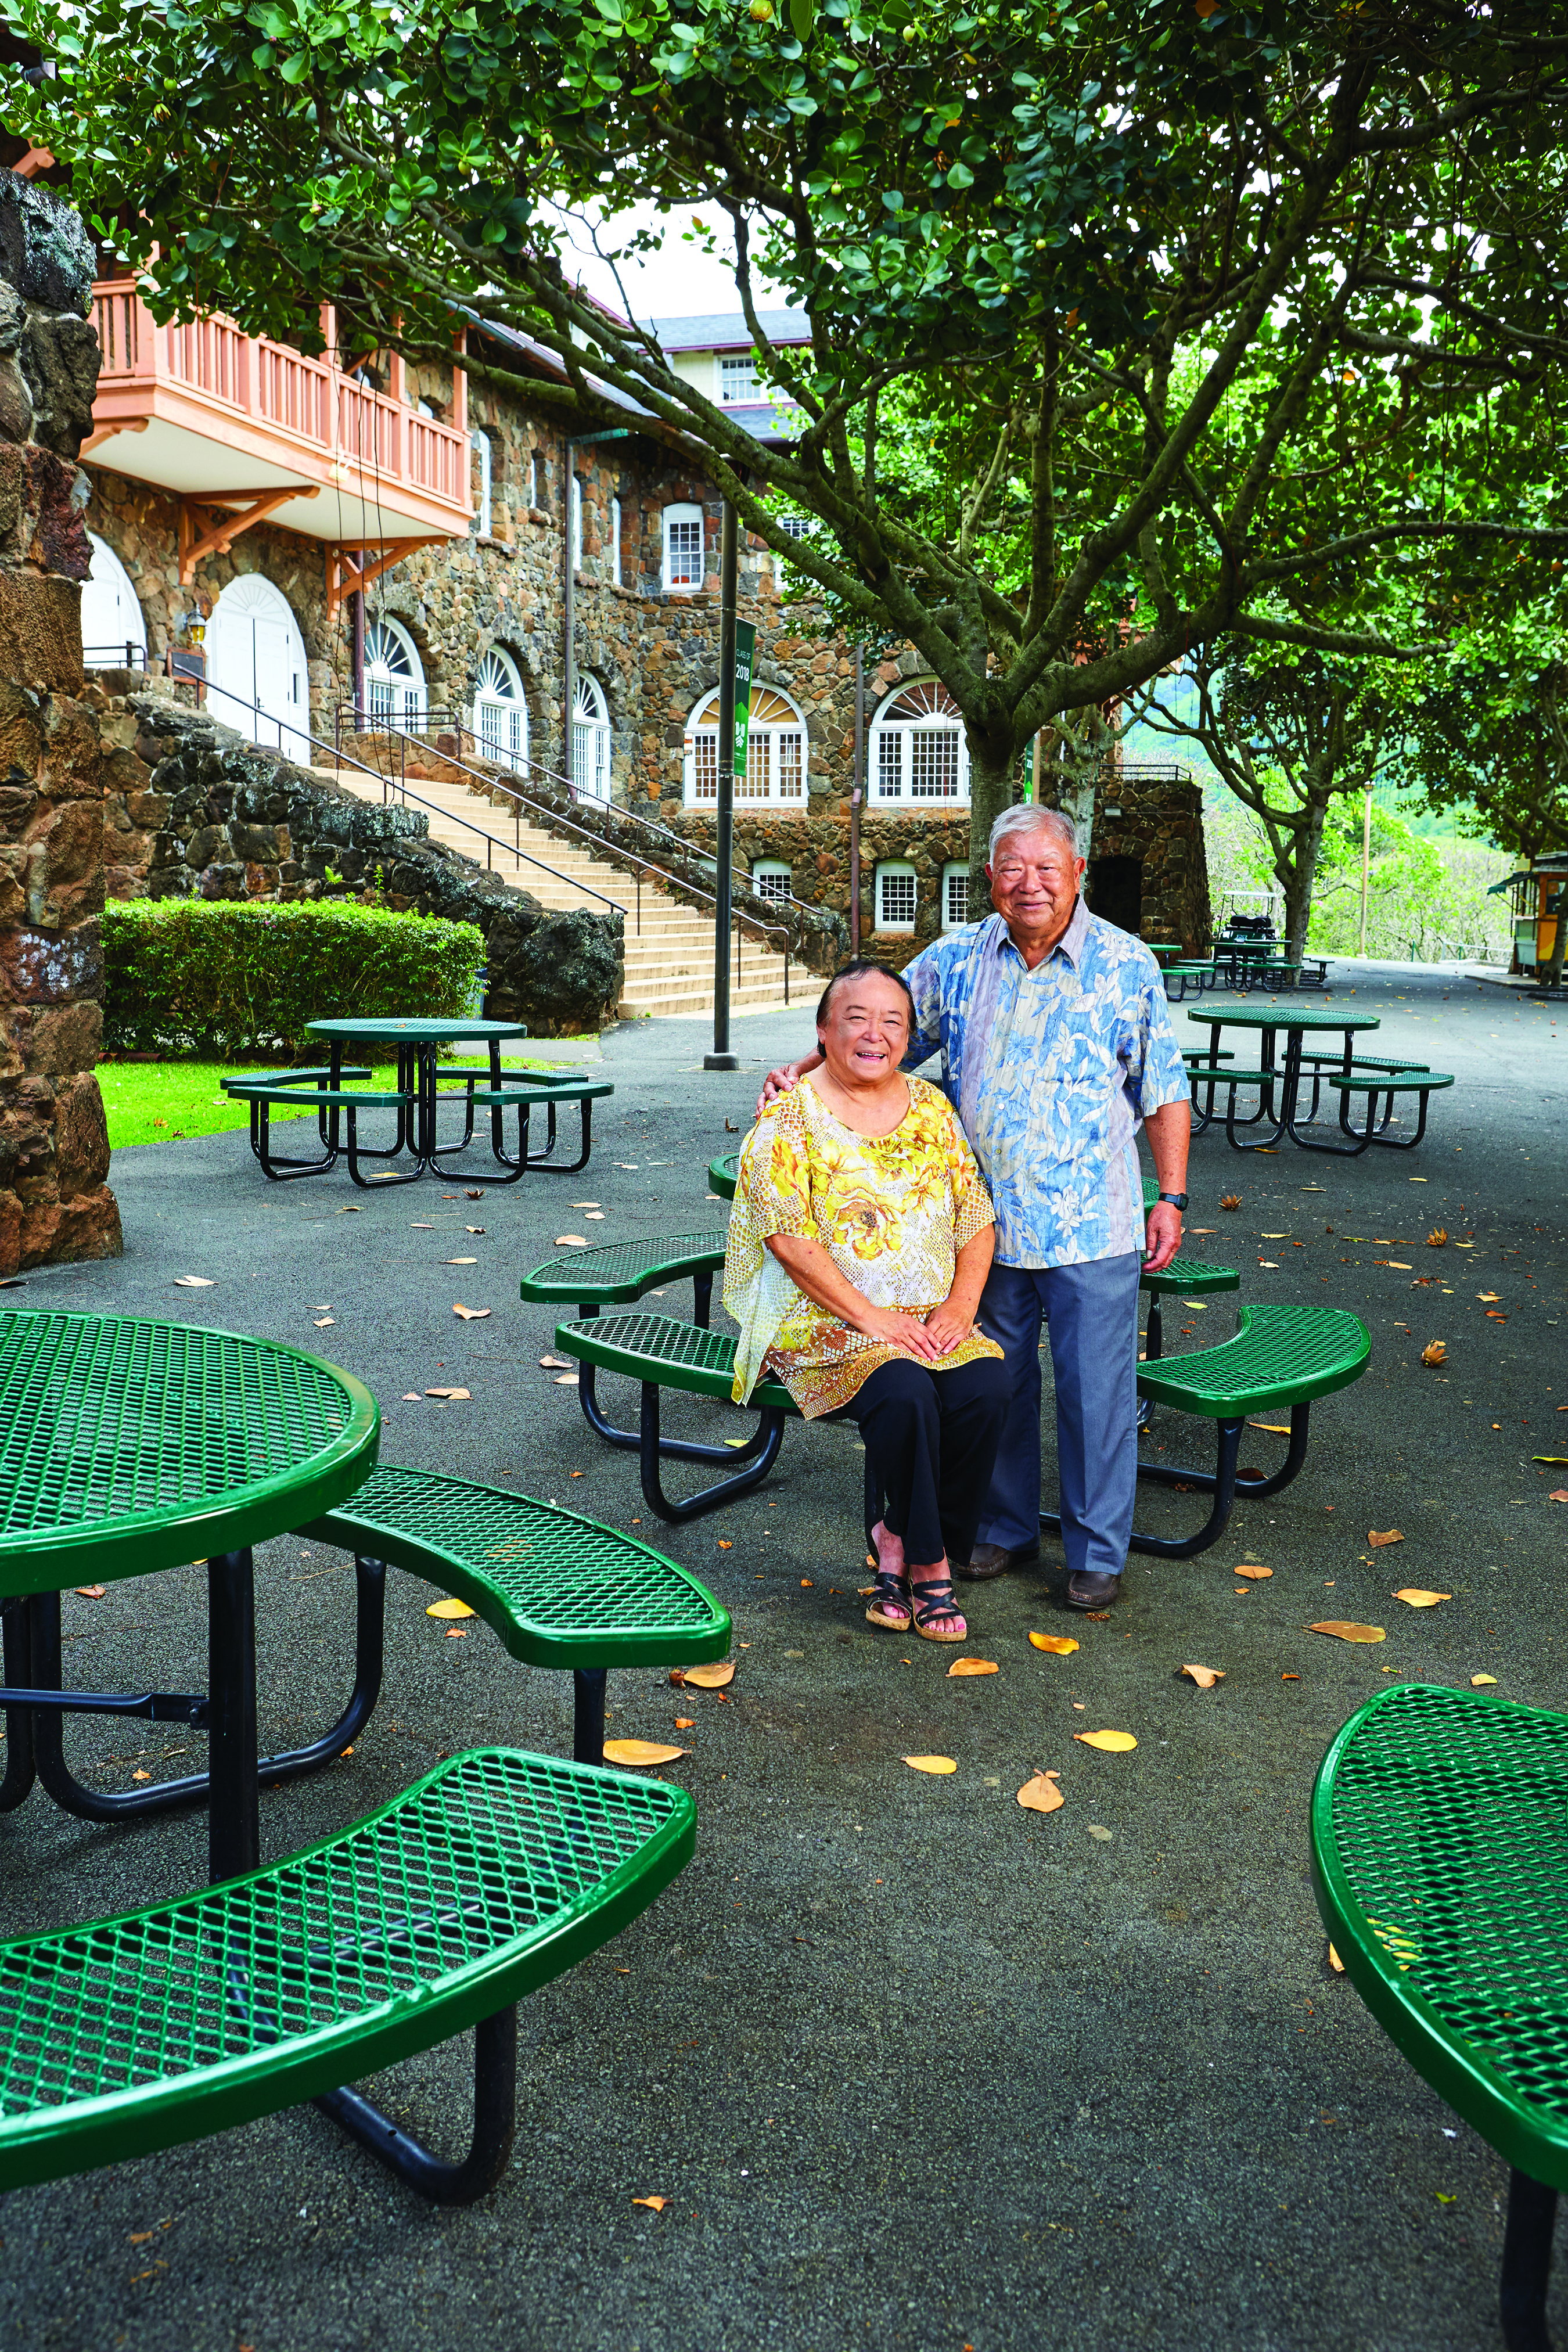 Dottie Crowell and Galen Narimatsu in the courtyard of historic Kawaiha'o Hall. The Hall was built in 1908 when the Kawaiha'o Seminary for girls and the Mills Institute for boys moved to their new joint campus in Ma¯noa, known as the Mid-Pacific Institute.